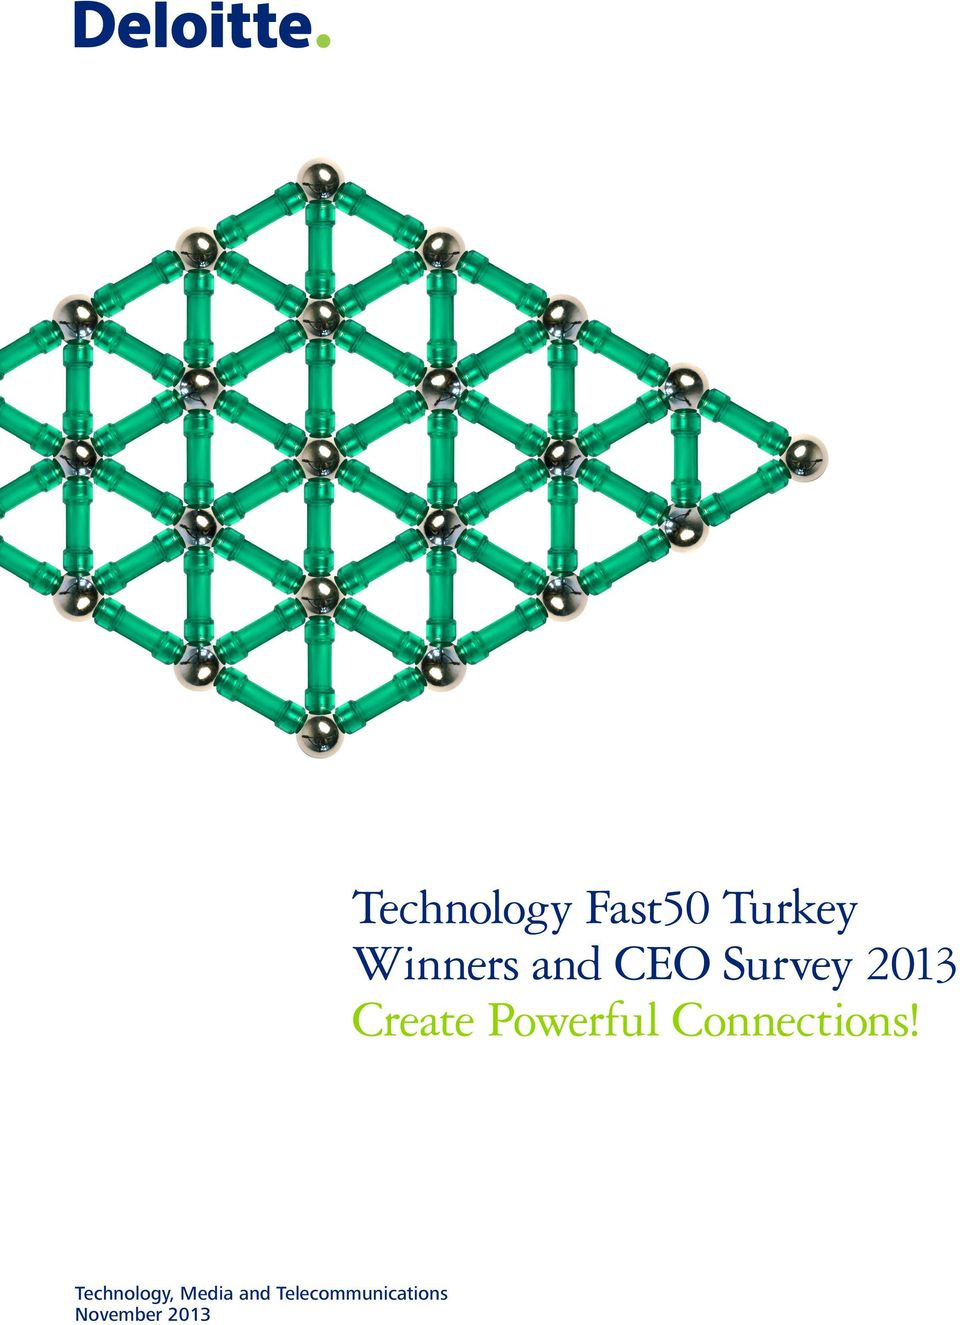 Technology Fast50 Turkey Winners